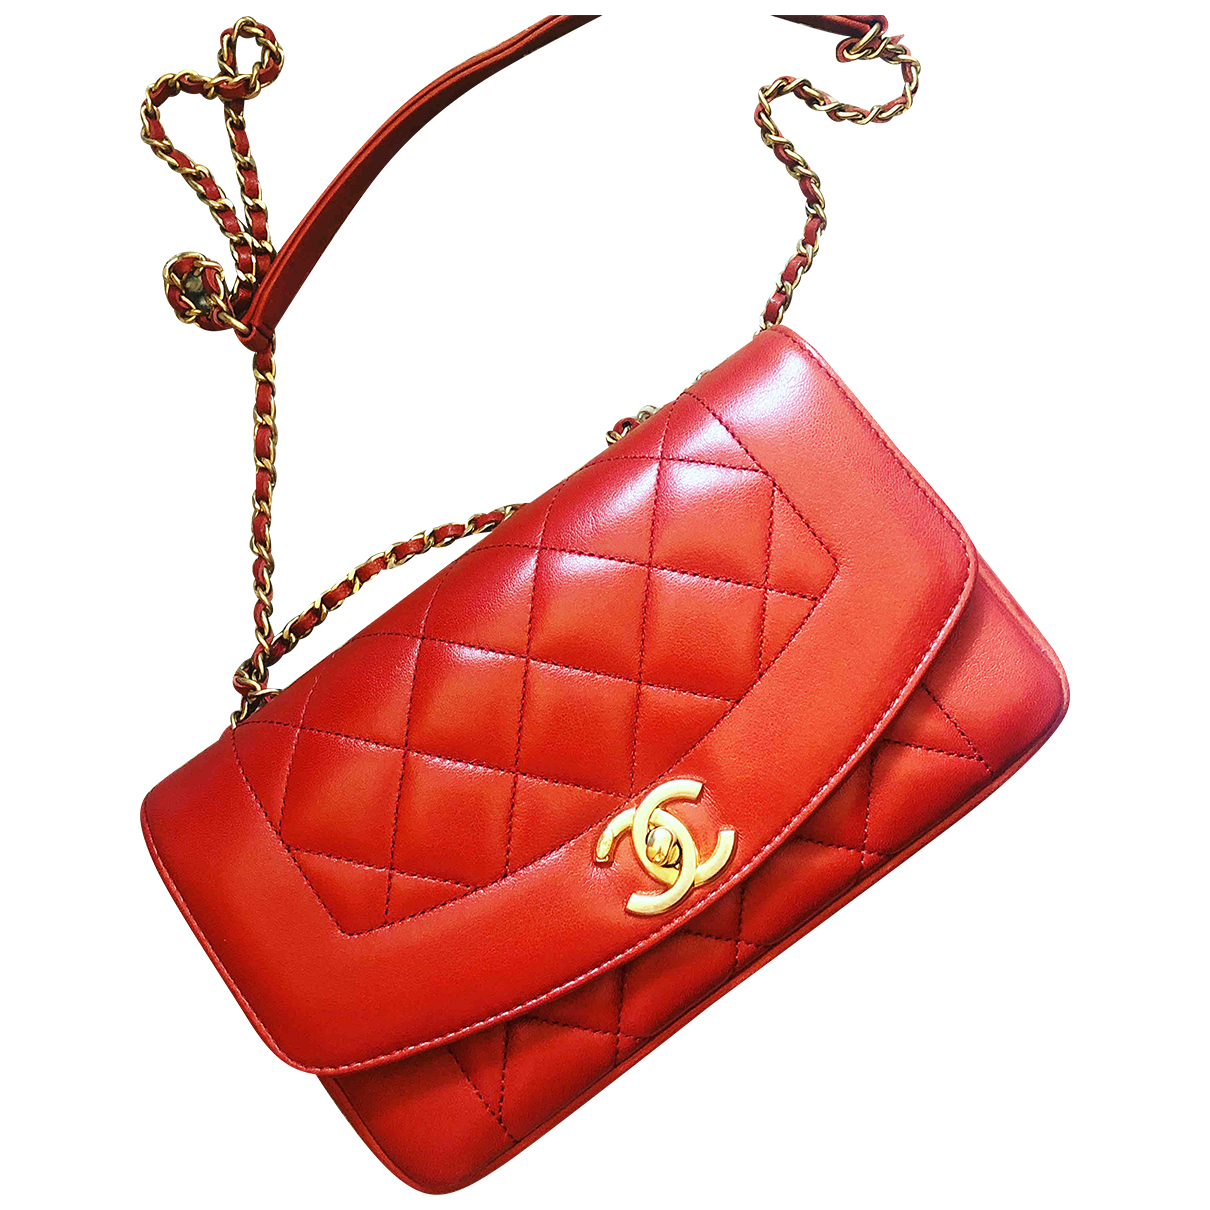 Chanel Diana Red Leather handbag for Women N